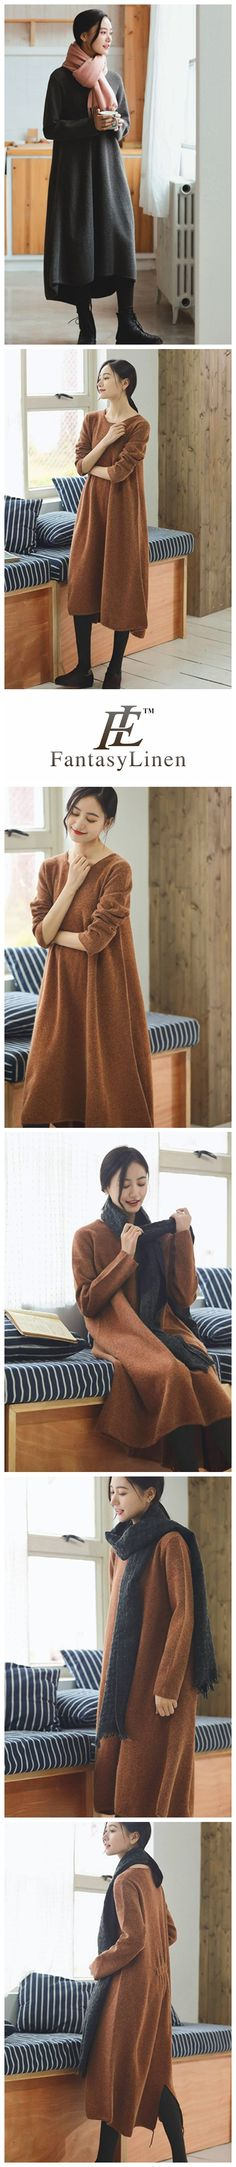 Orange Maxi Loose Wool Knitted Long Sweater Dress in Autumn/Winter Q2731 Q2731Orange